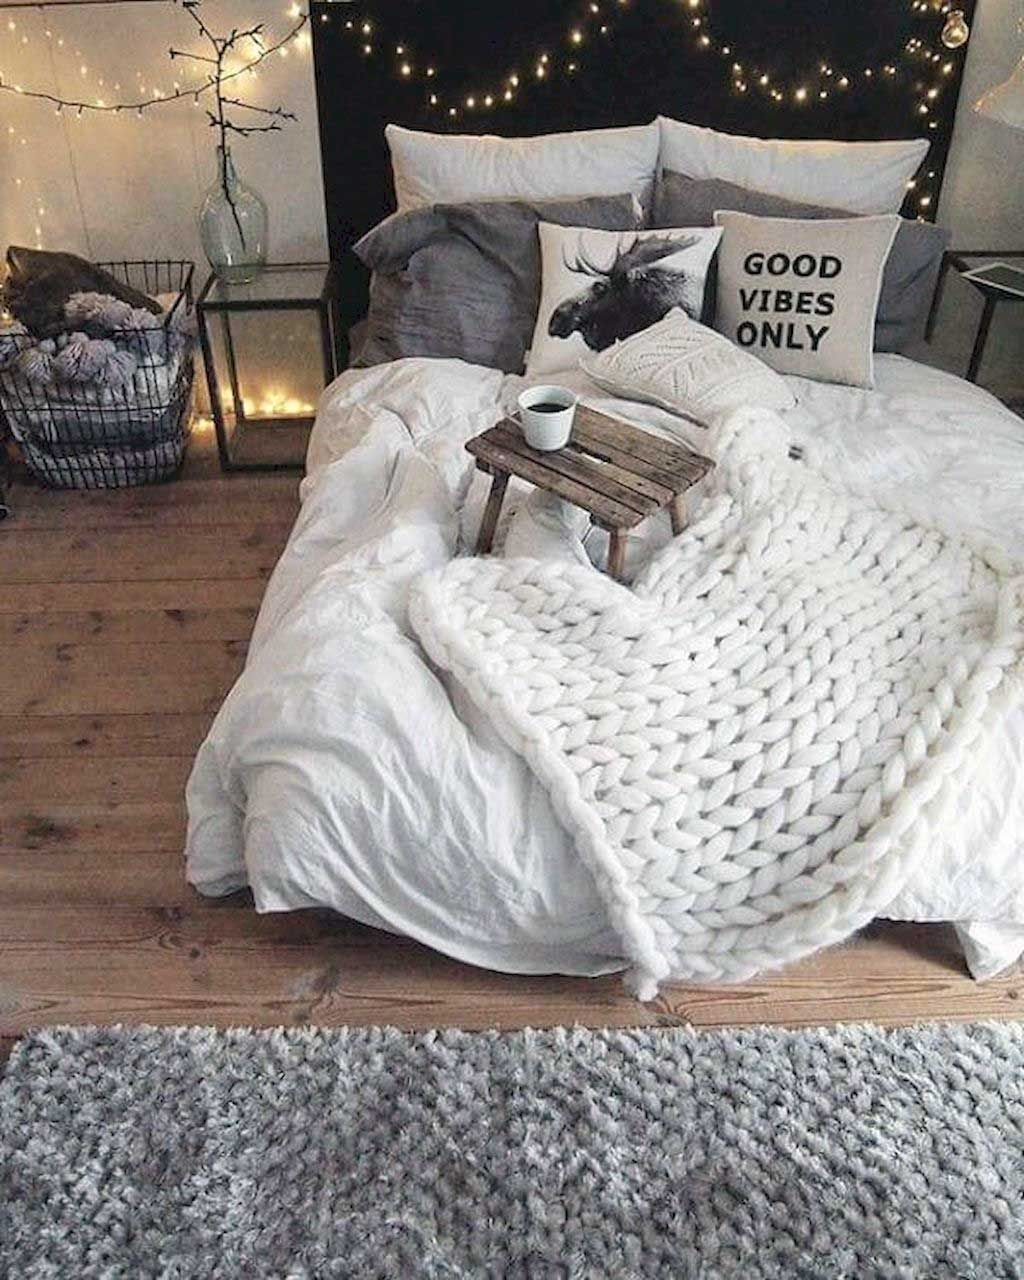 35 Cute Apartment Bedroom Room Decor Ideas Bedroom Decor Cozy Bedroom Decor For Couples Bedroom Vintage